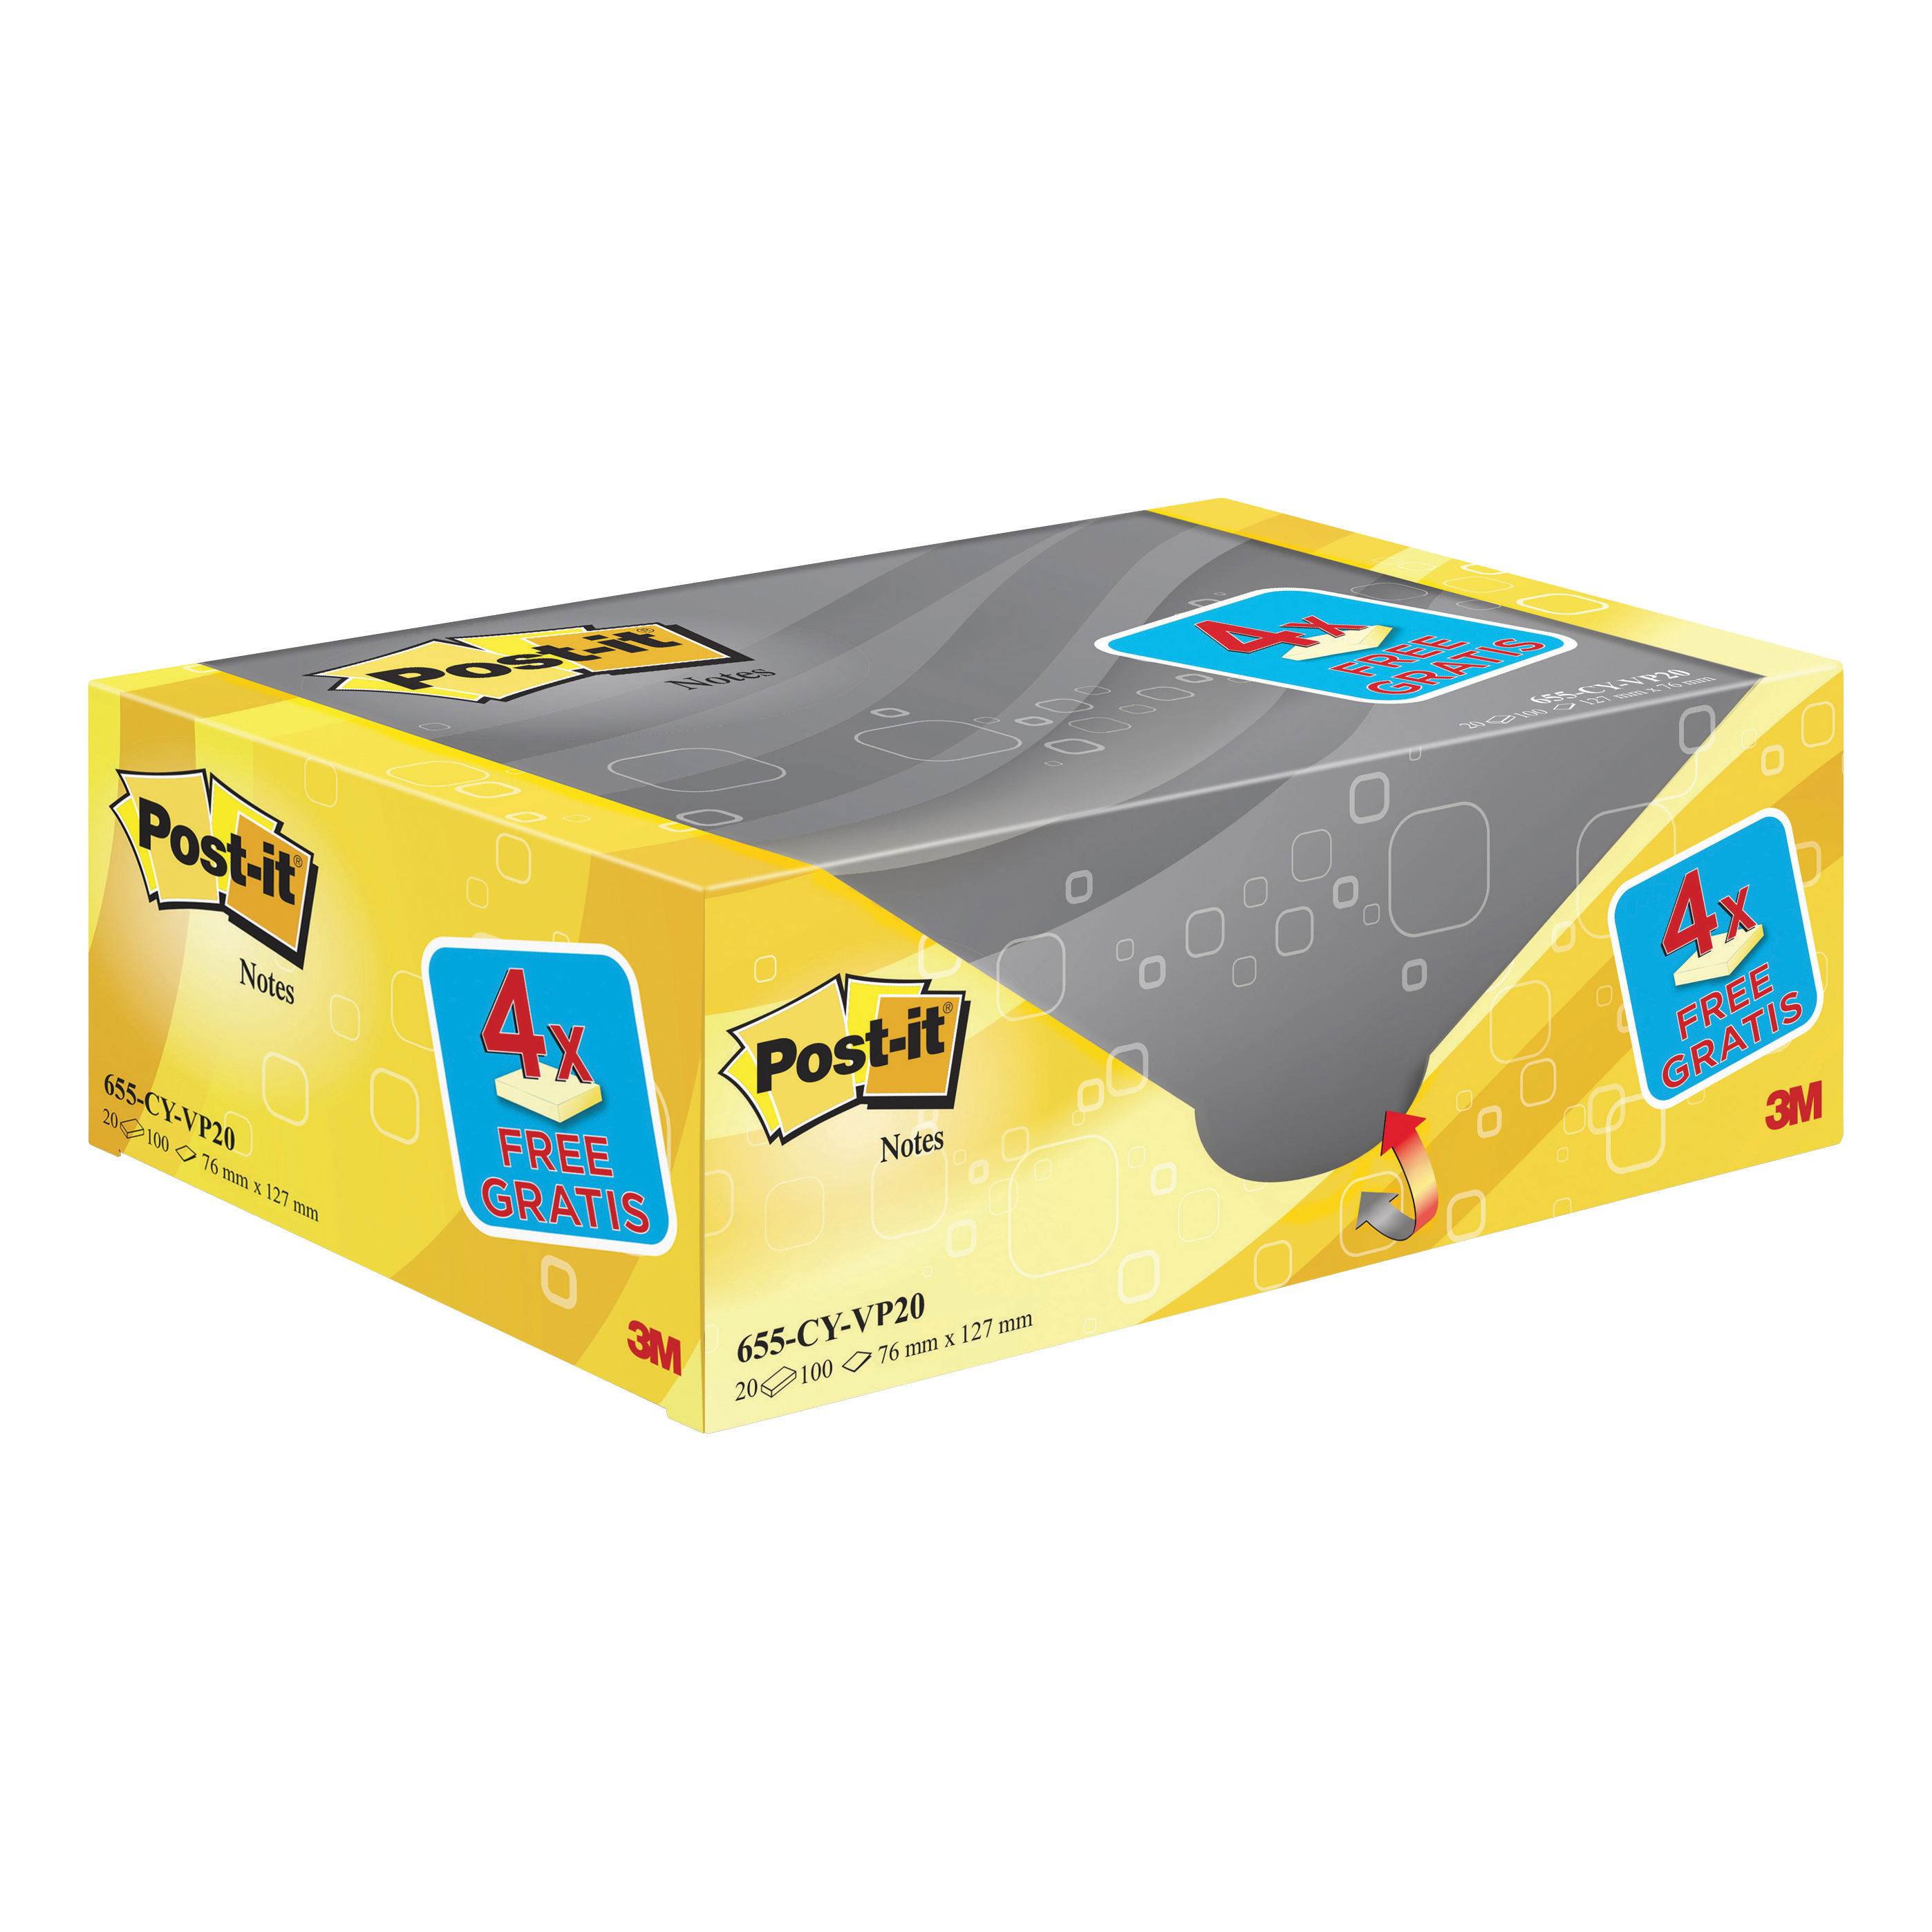 Postit PEFC Note Dsp 76X127 Pk16 plus 4